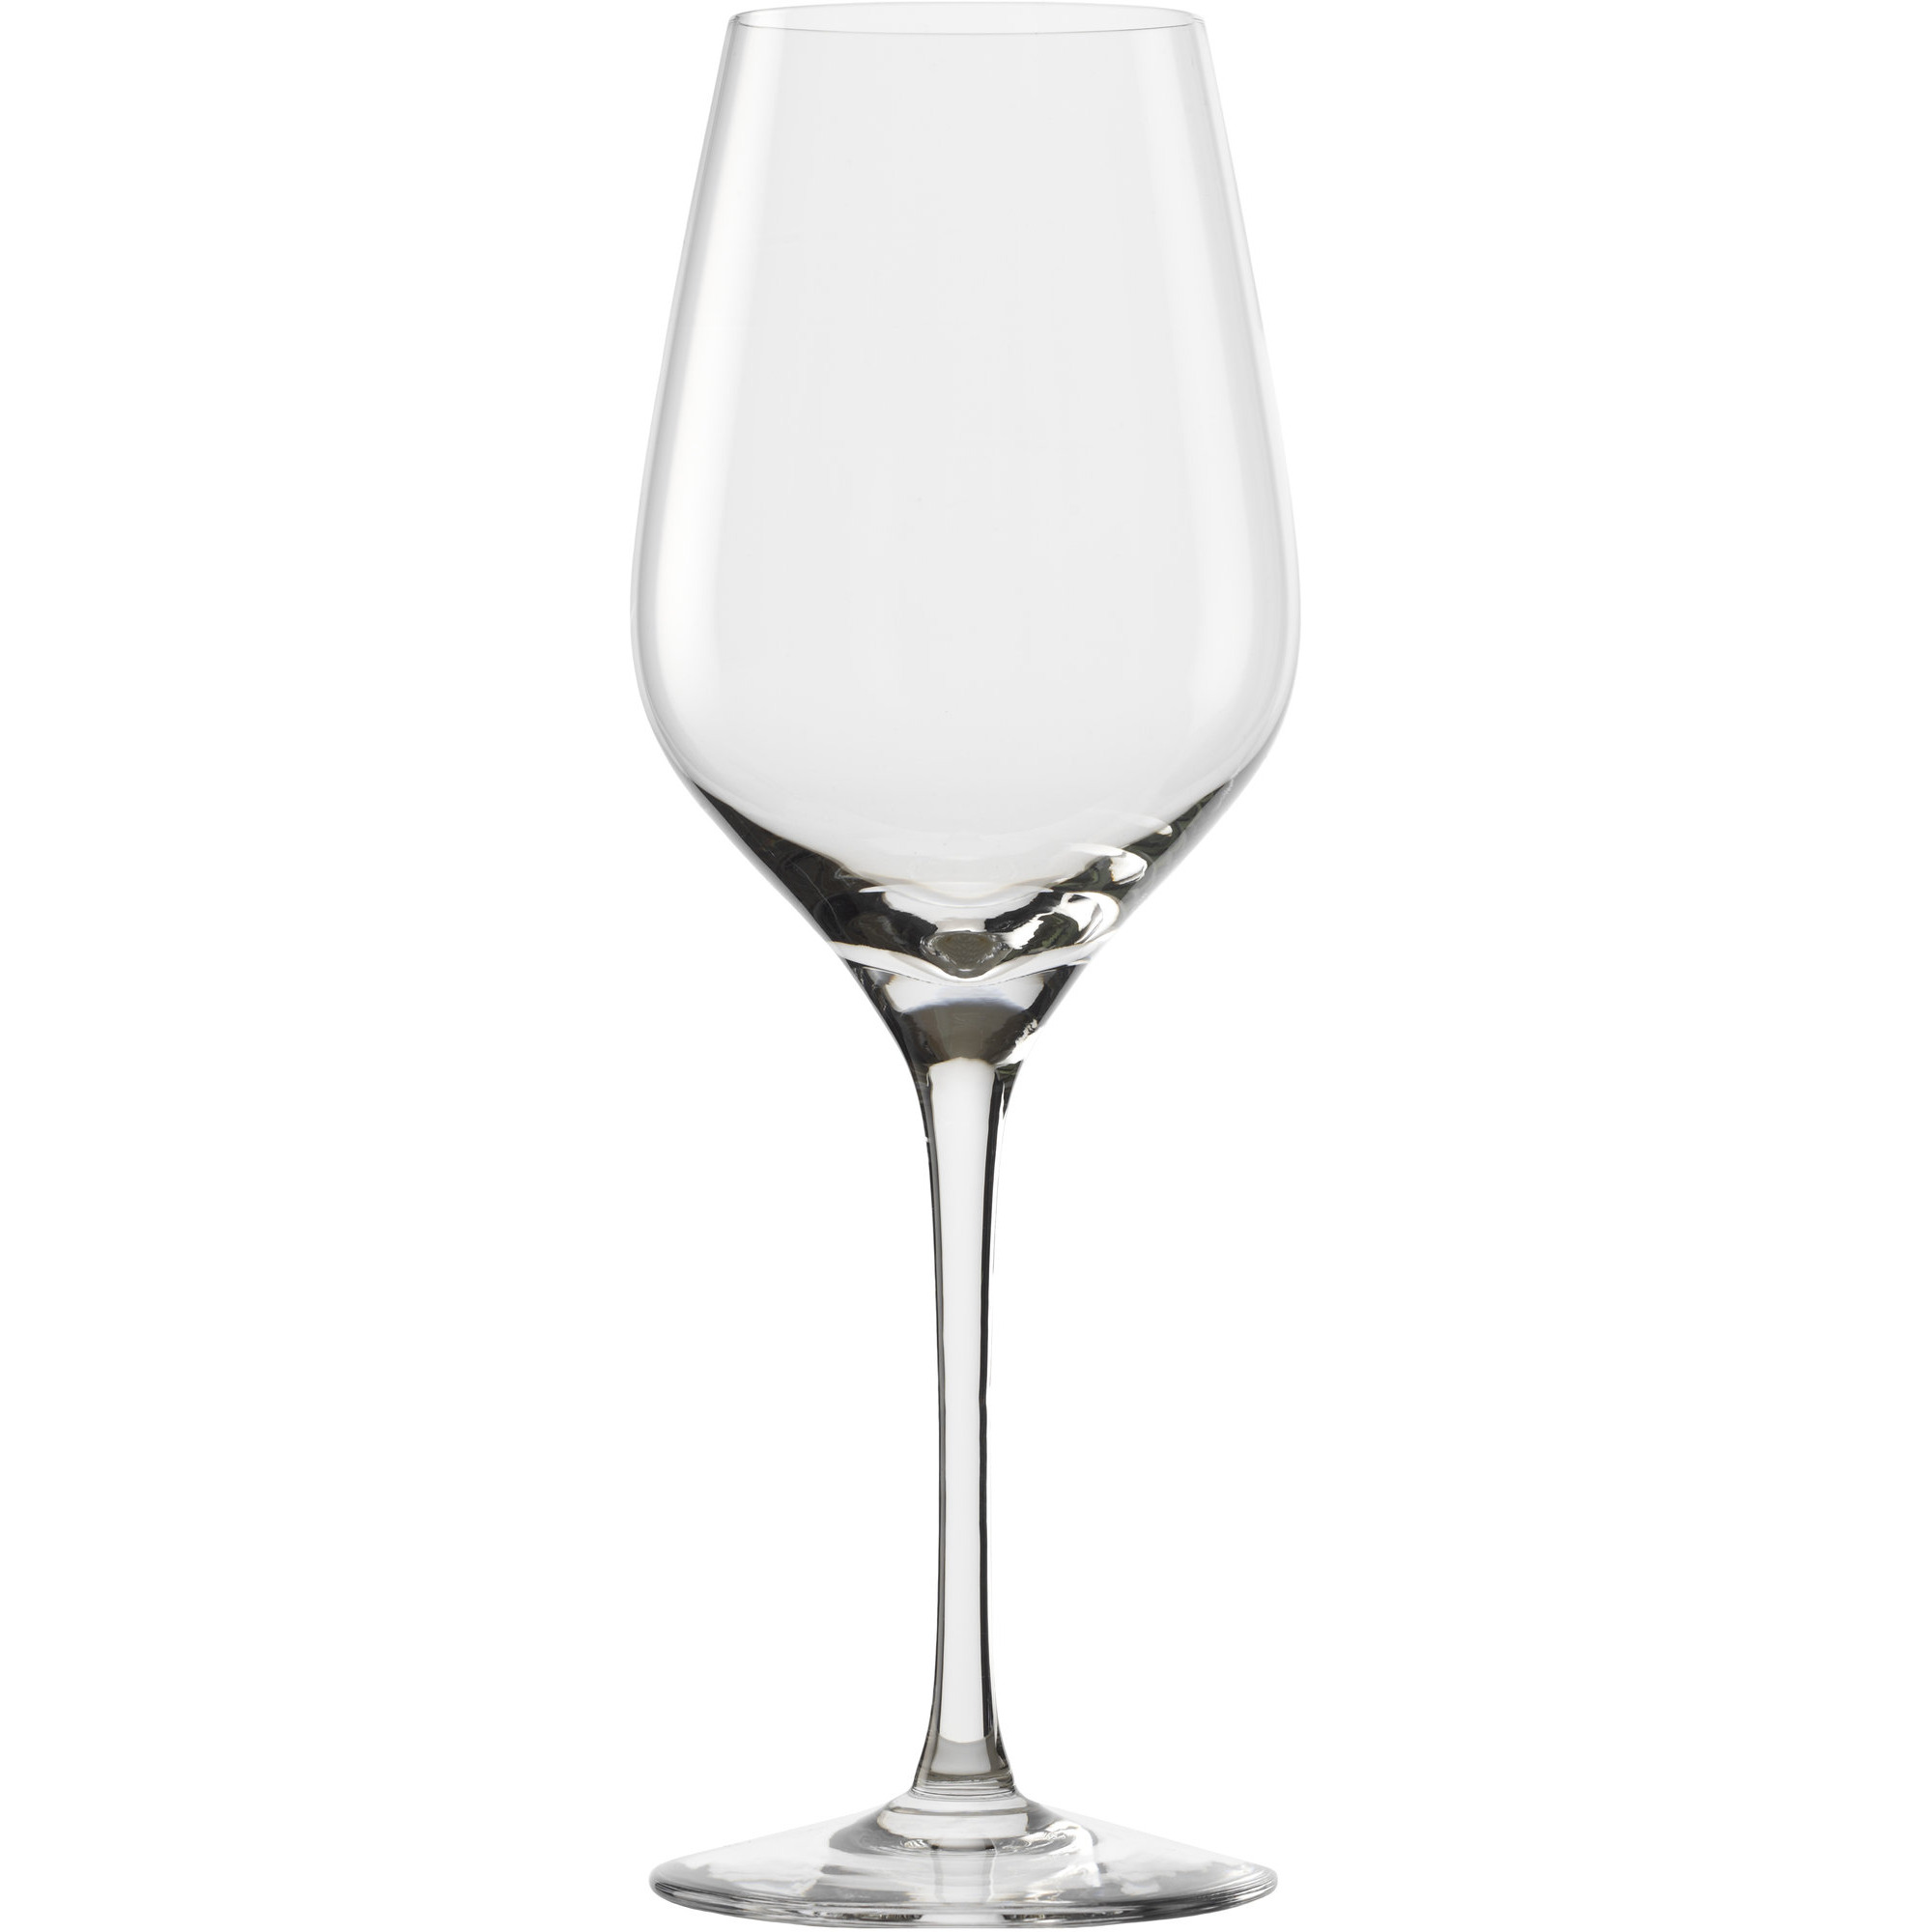 Aida Passion Vitvinsglas 42 cl 2-Pack